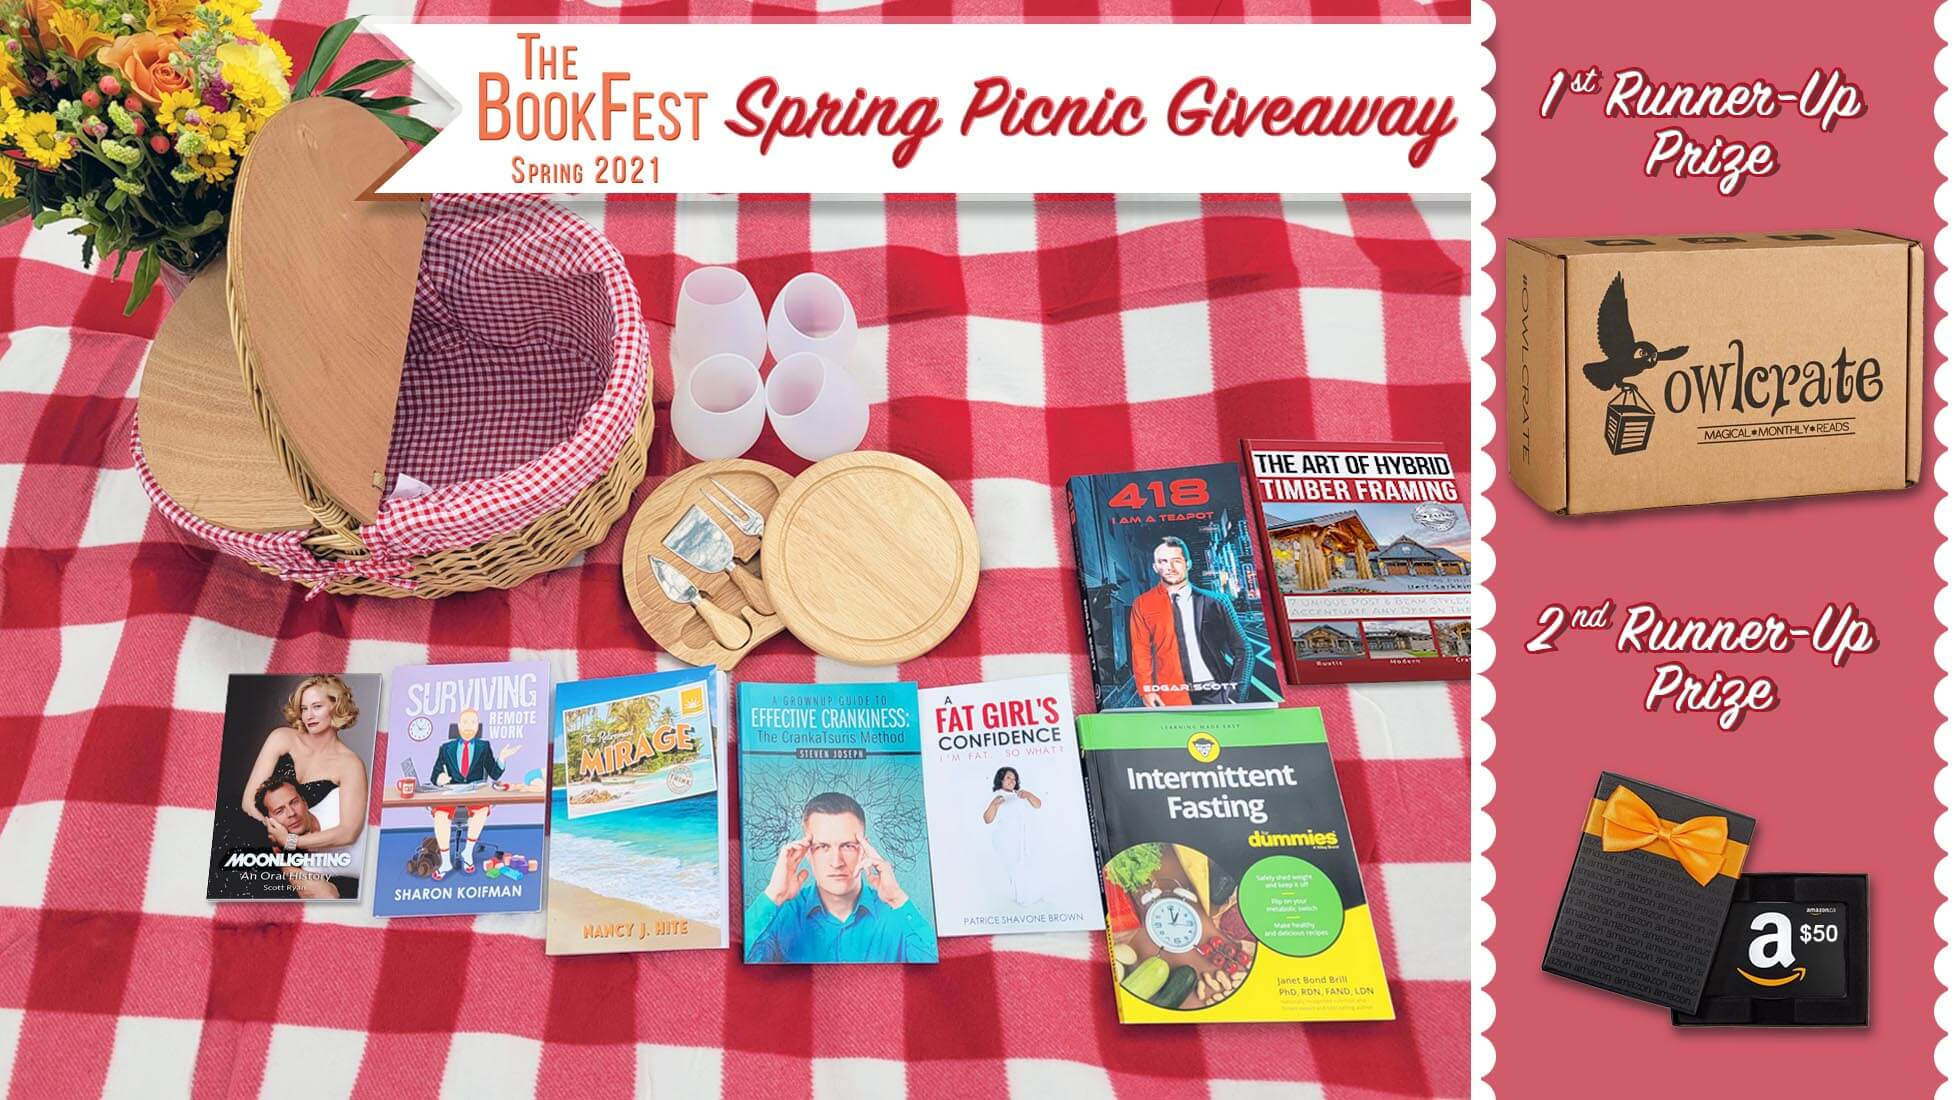 The BookFest Spring Giveaway prizes include books, a picnic basket, wine glasses, and more